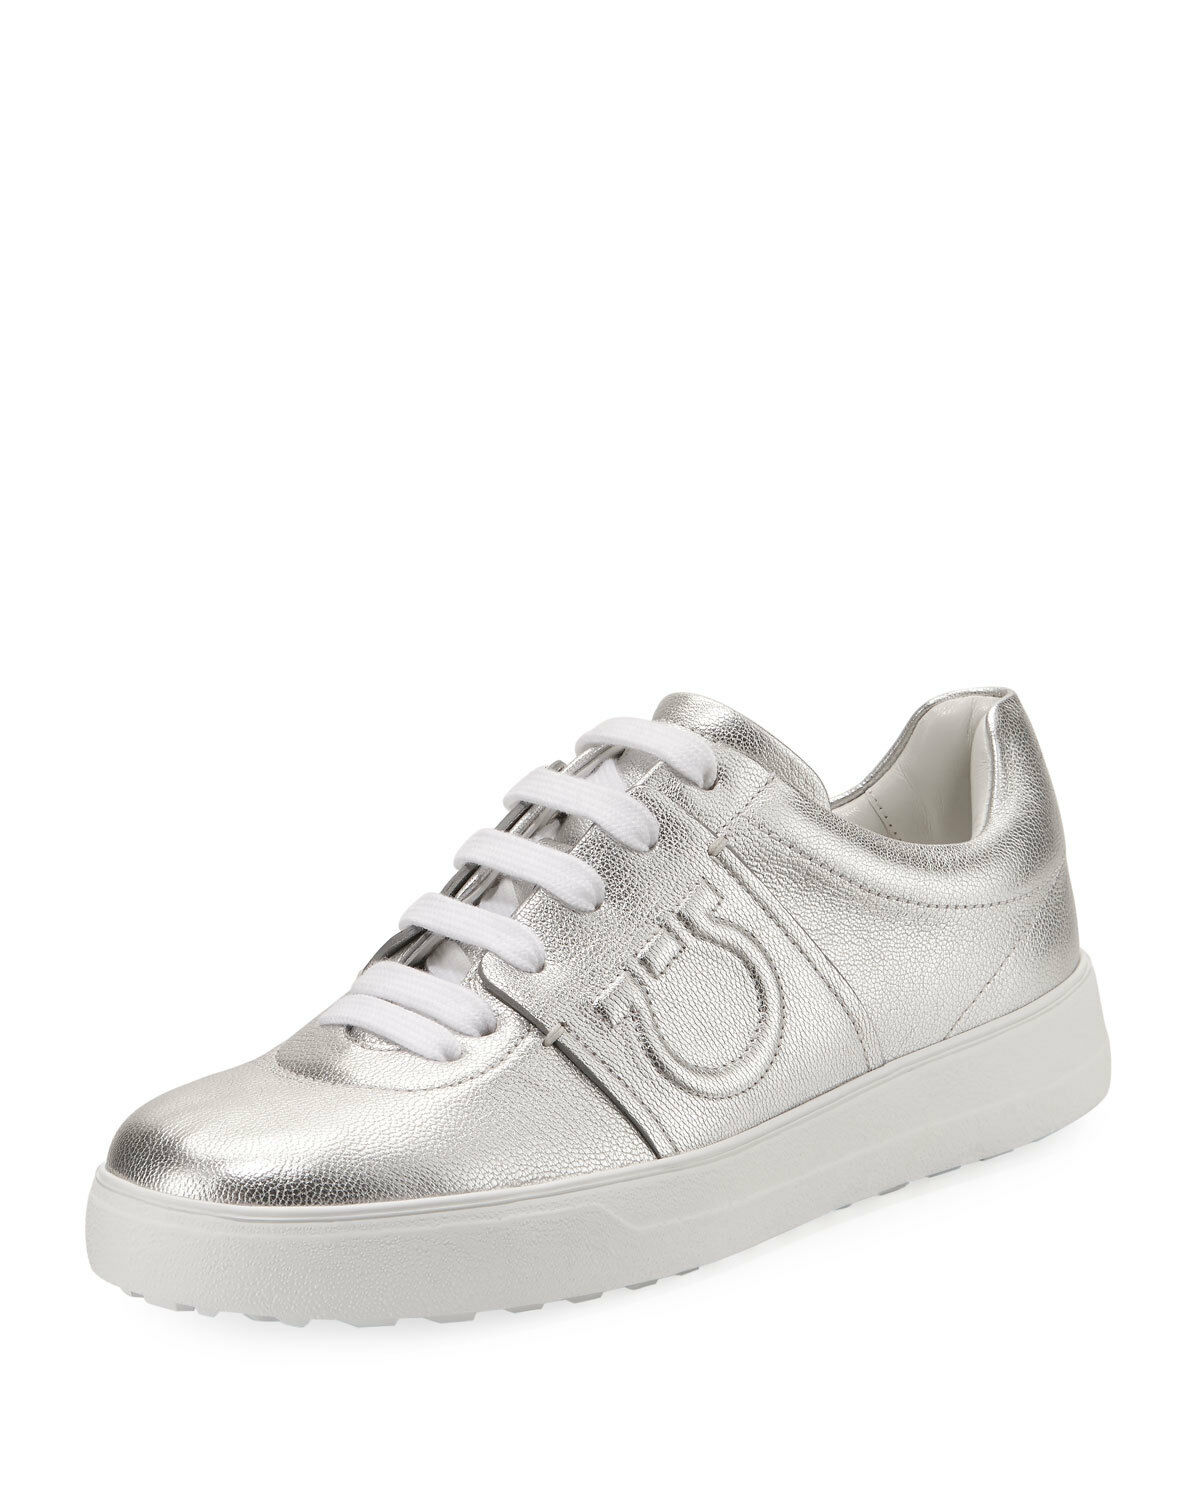 NIB NEW Salvatore Ferragamo Fasano Sneakers metallic silver 9C